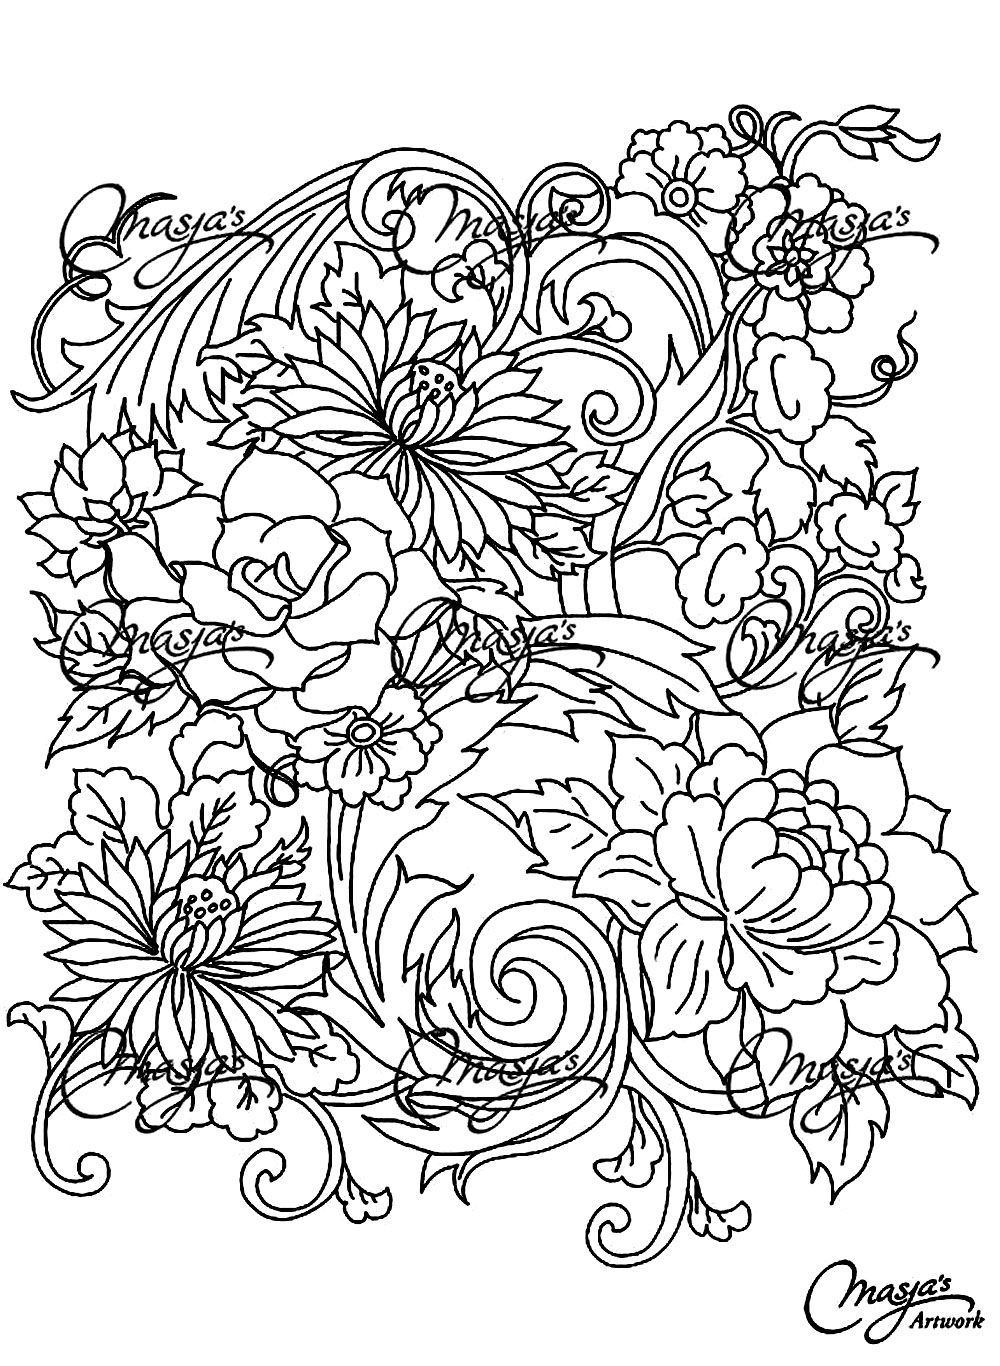 Scribbles Drawing And Coloring Book : Flowers and vegetation coloring pages for adults